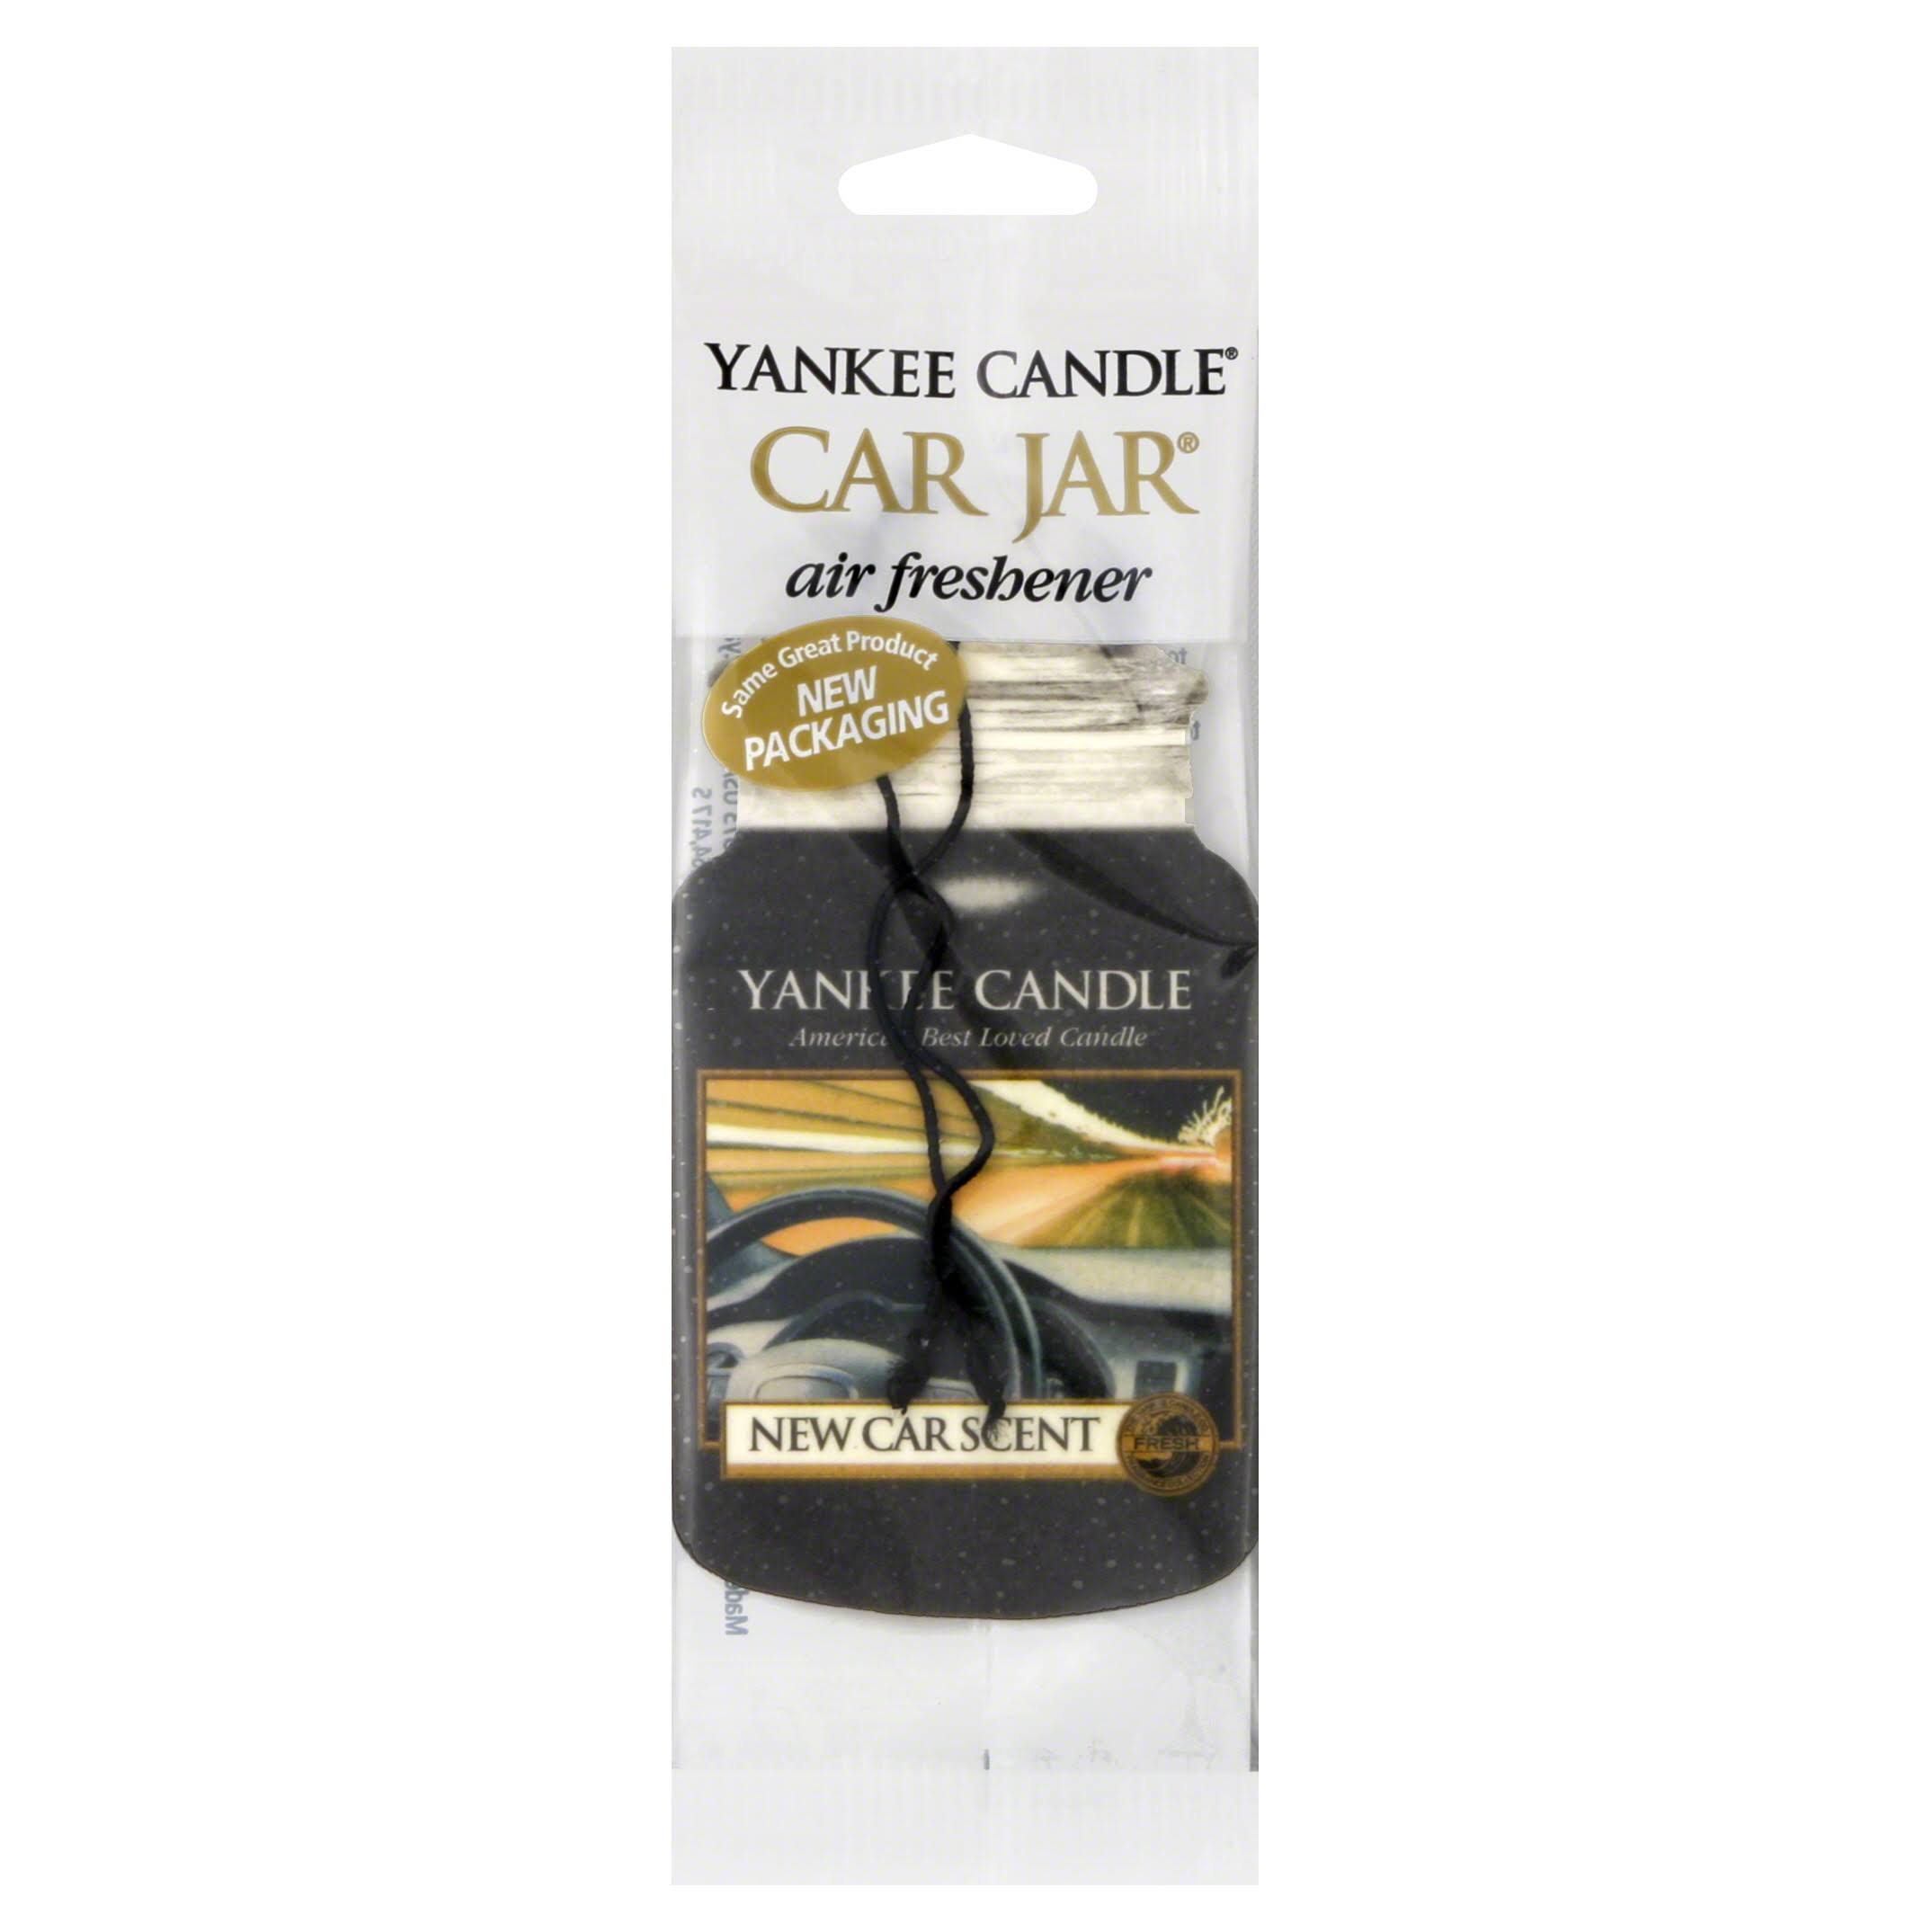 Yankee Candle New Car Scent Car Jar